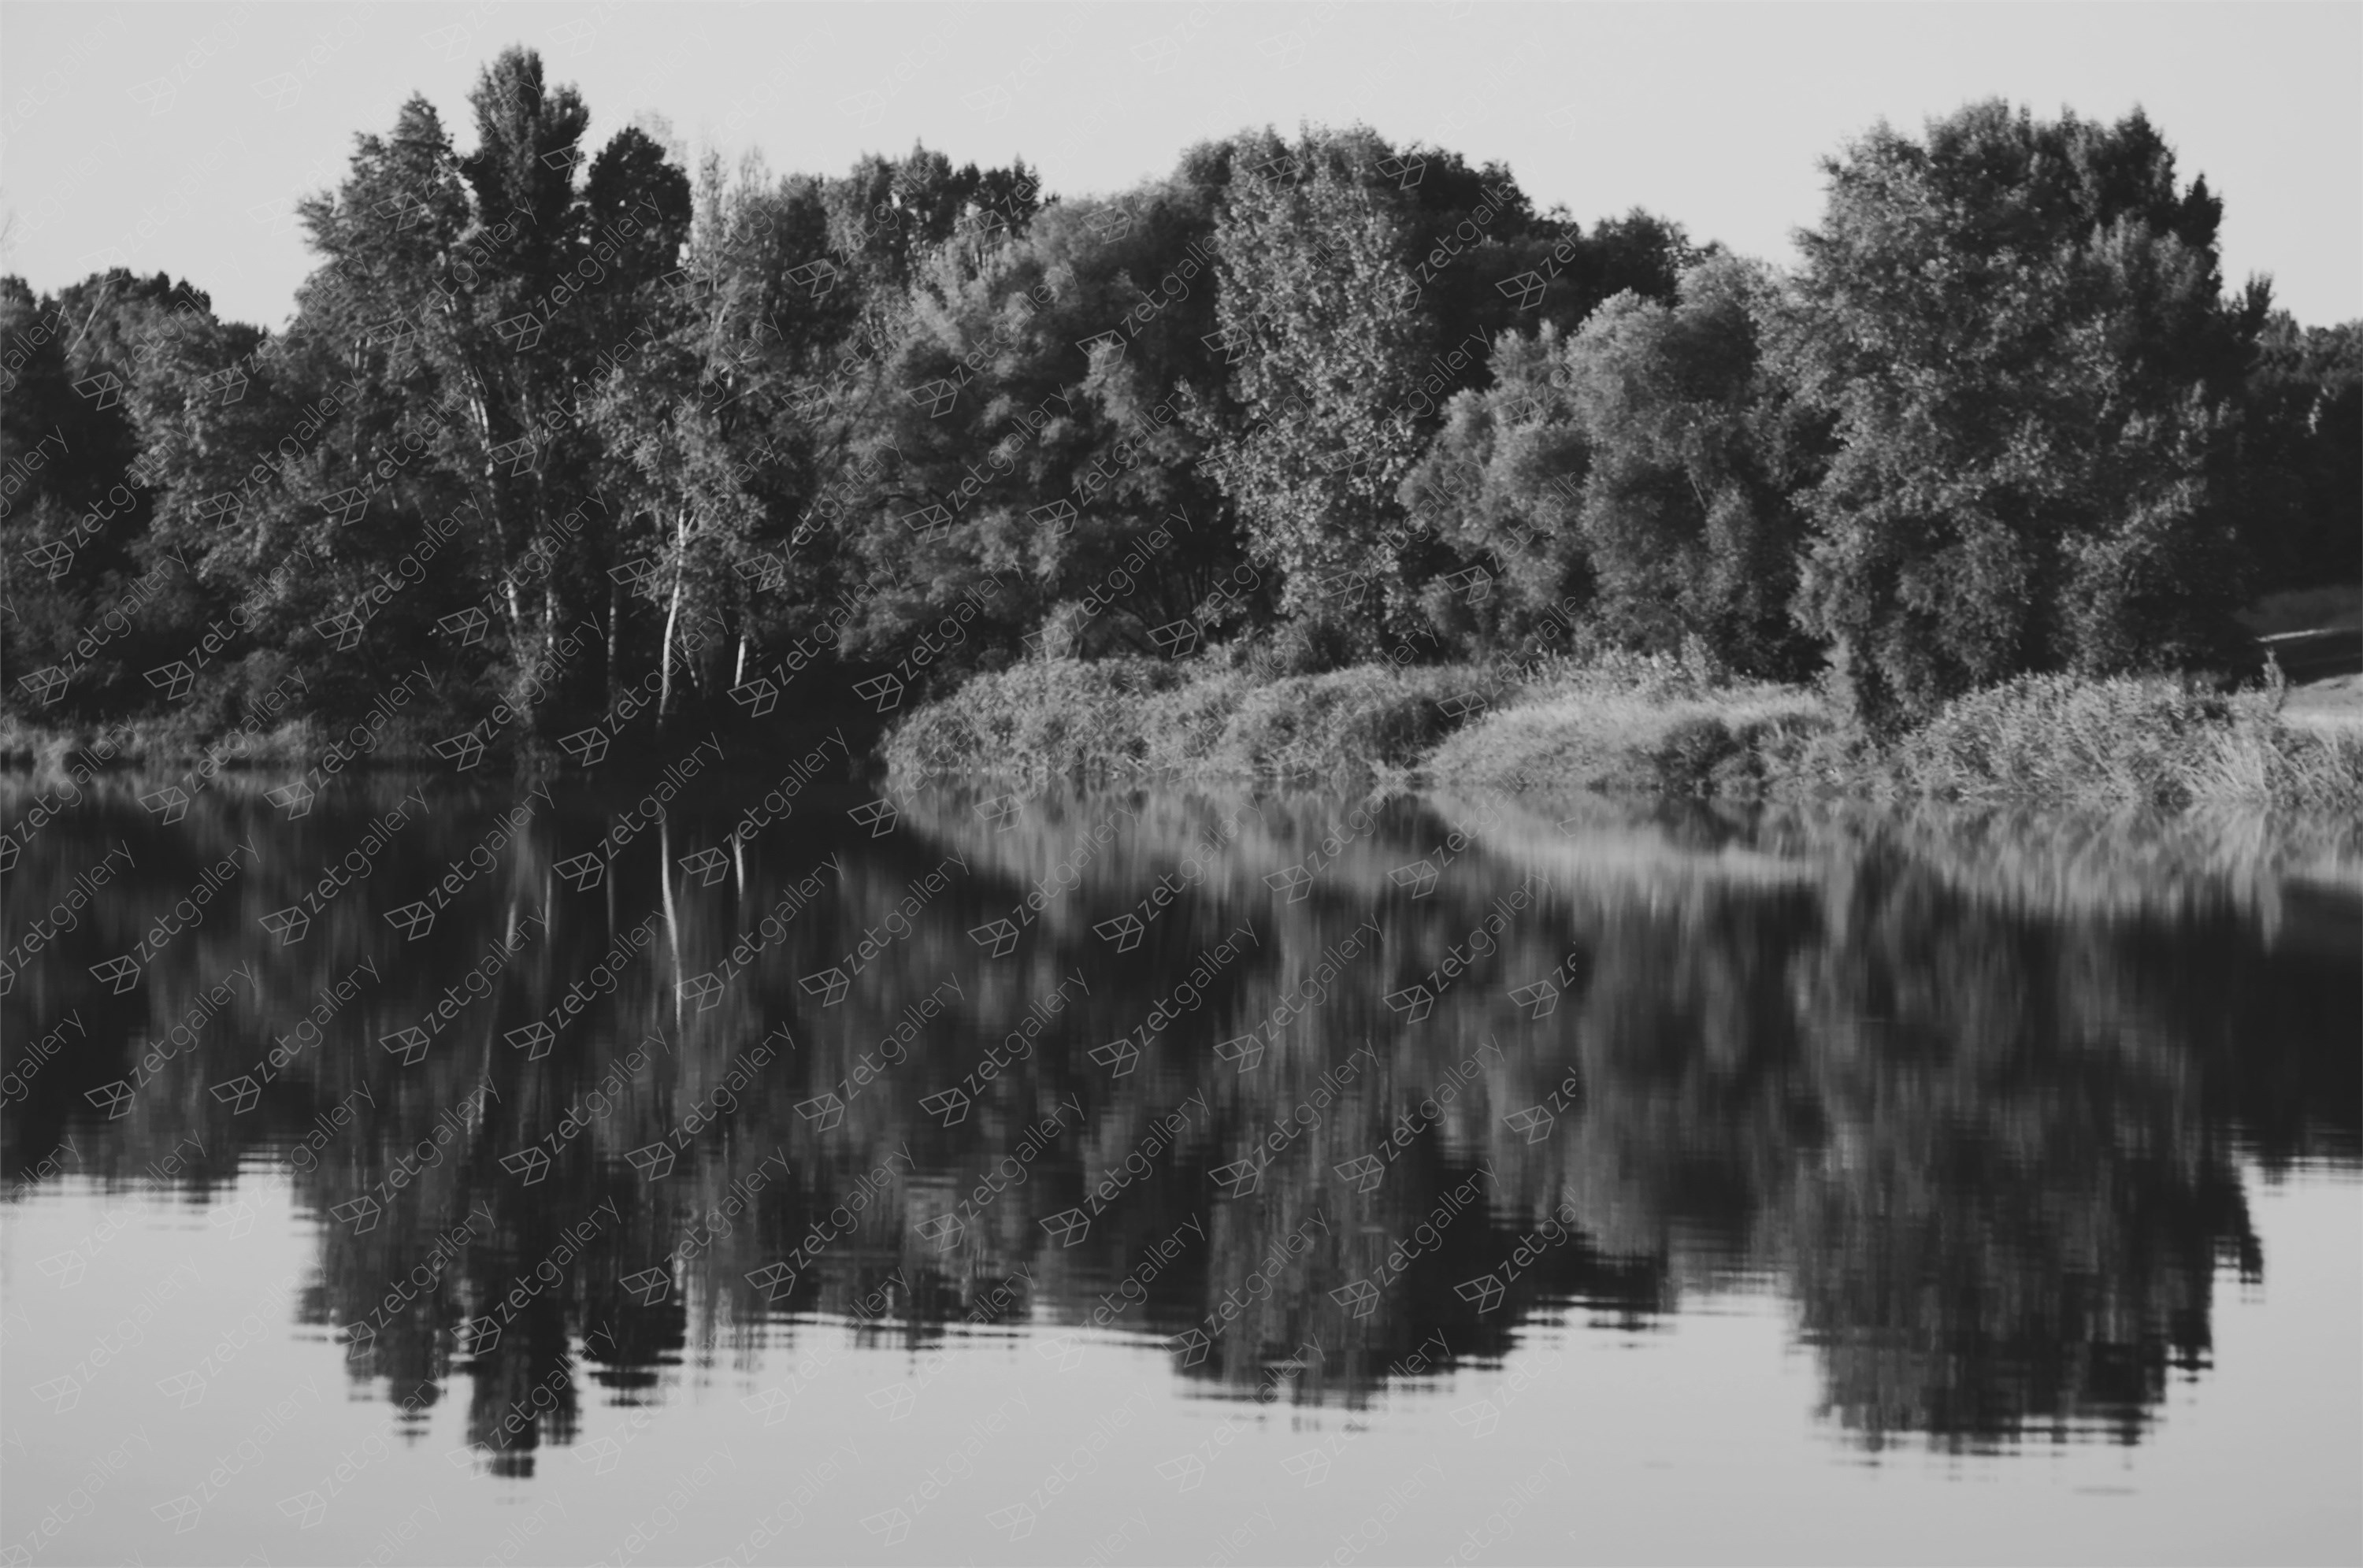 Reflected No.3, original B&W Digital Photography by Svetlana Neskovska